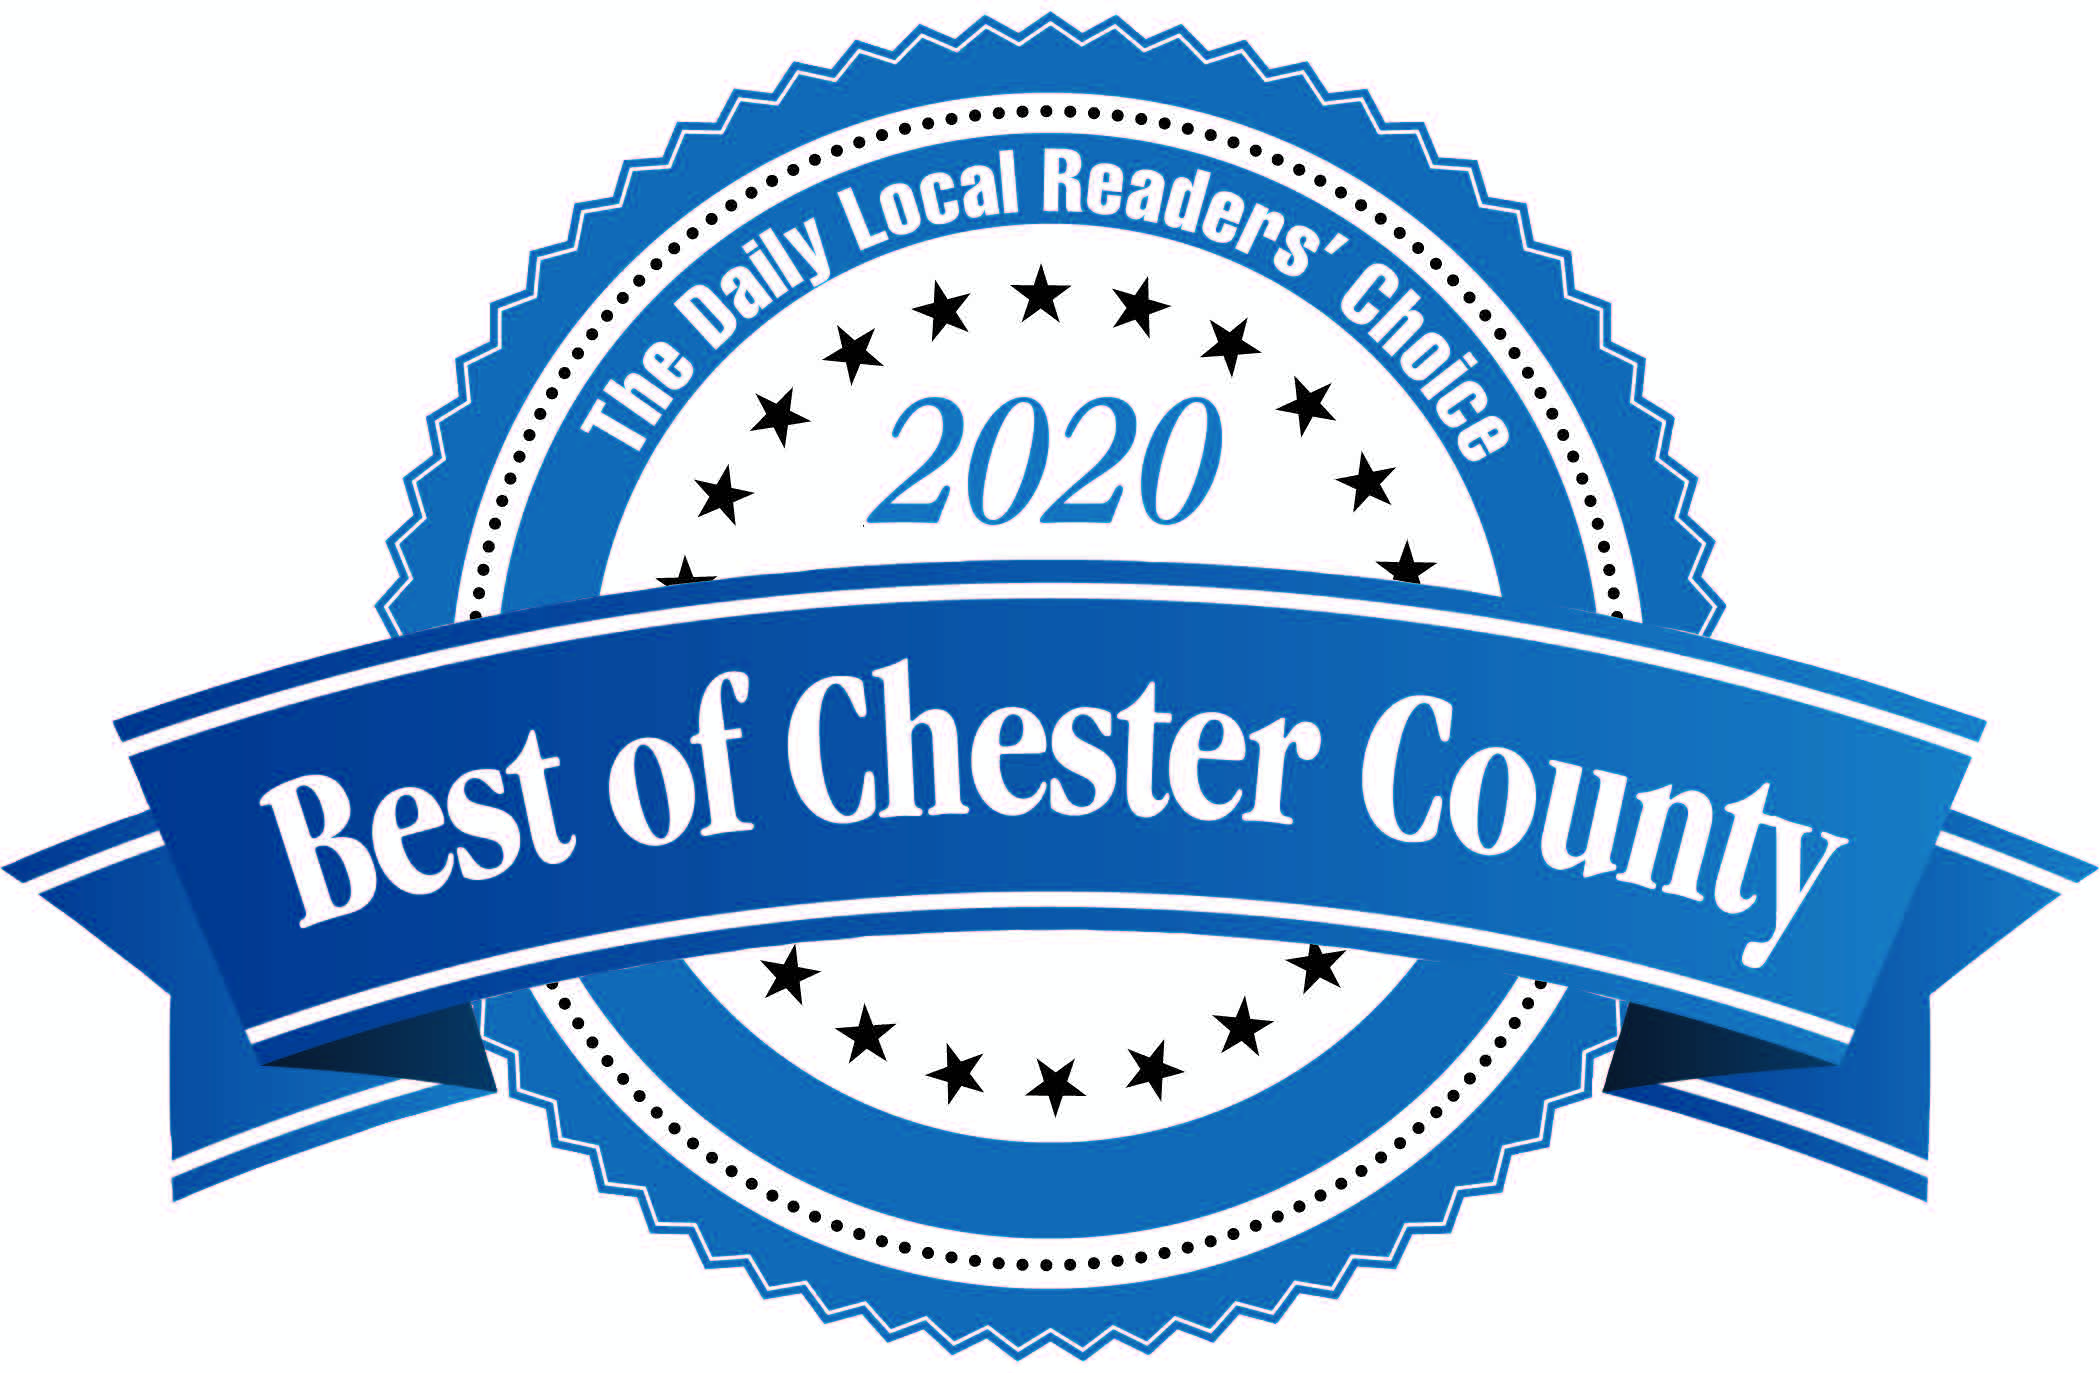 Best of Chester County 2020